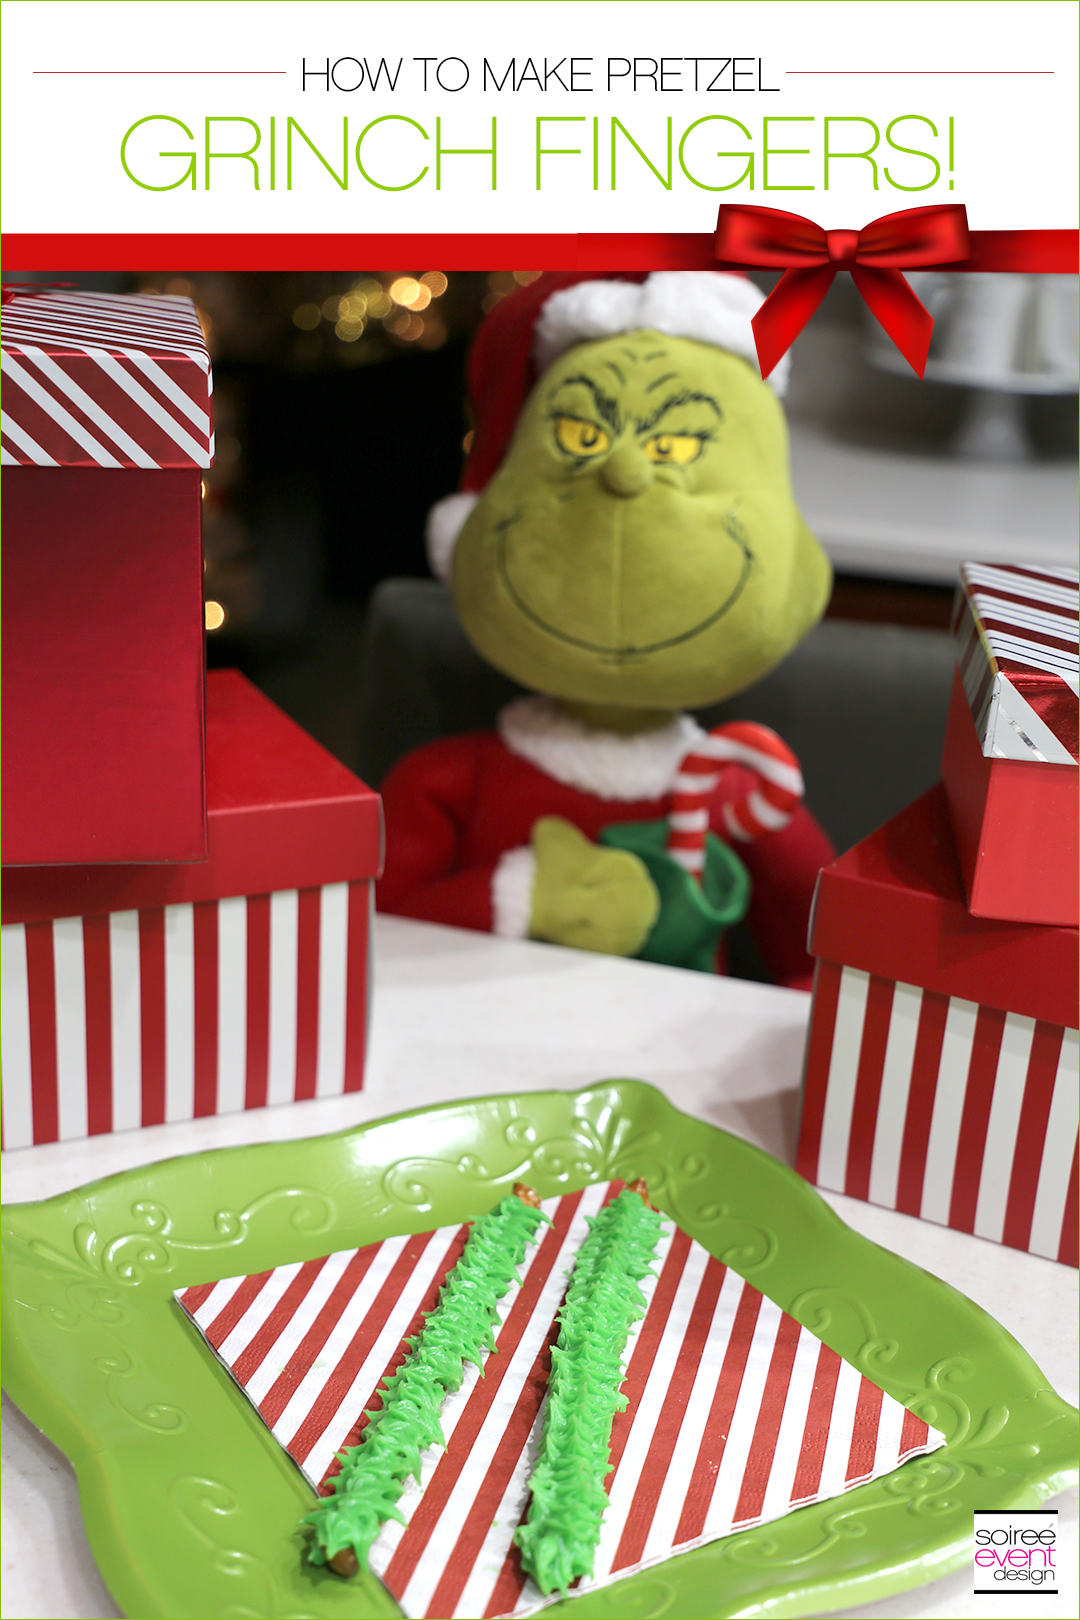 Grinch Dessert Ideas - Grinch Fingers Pretzels